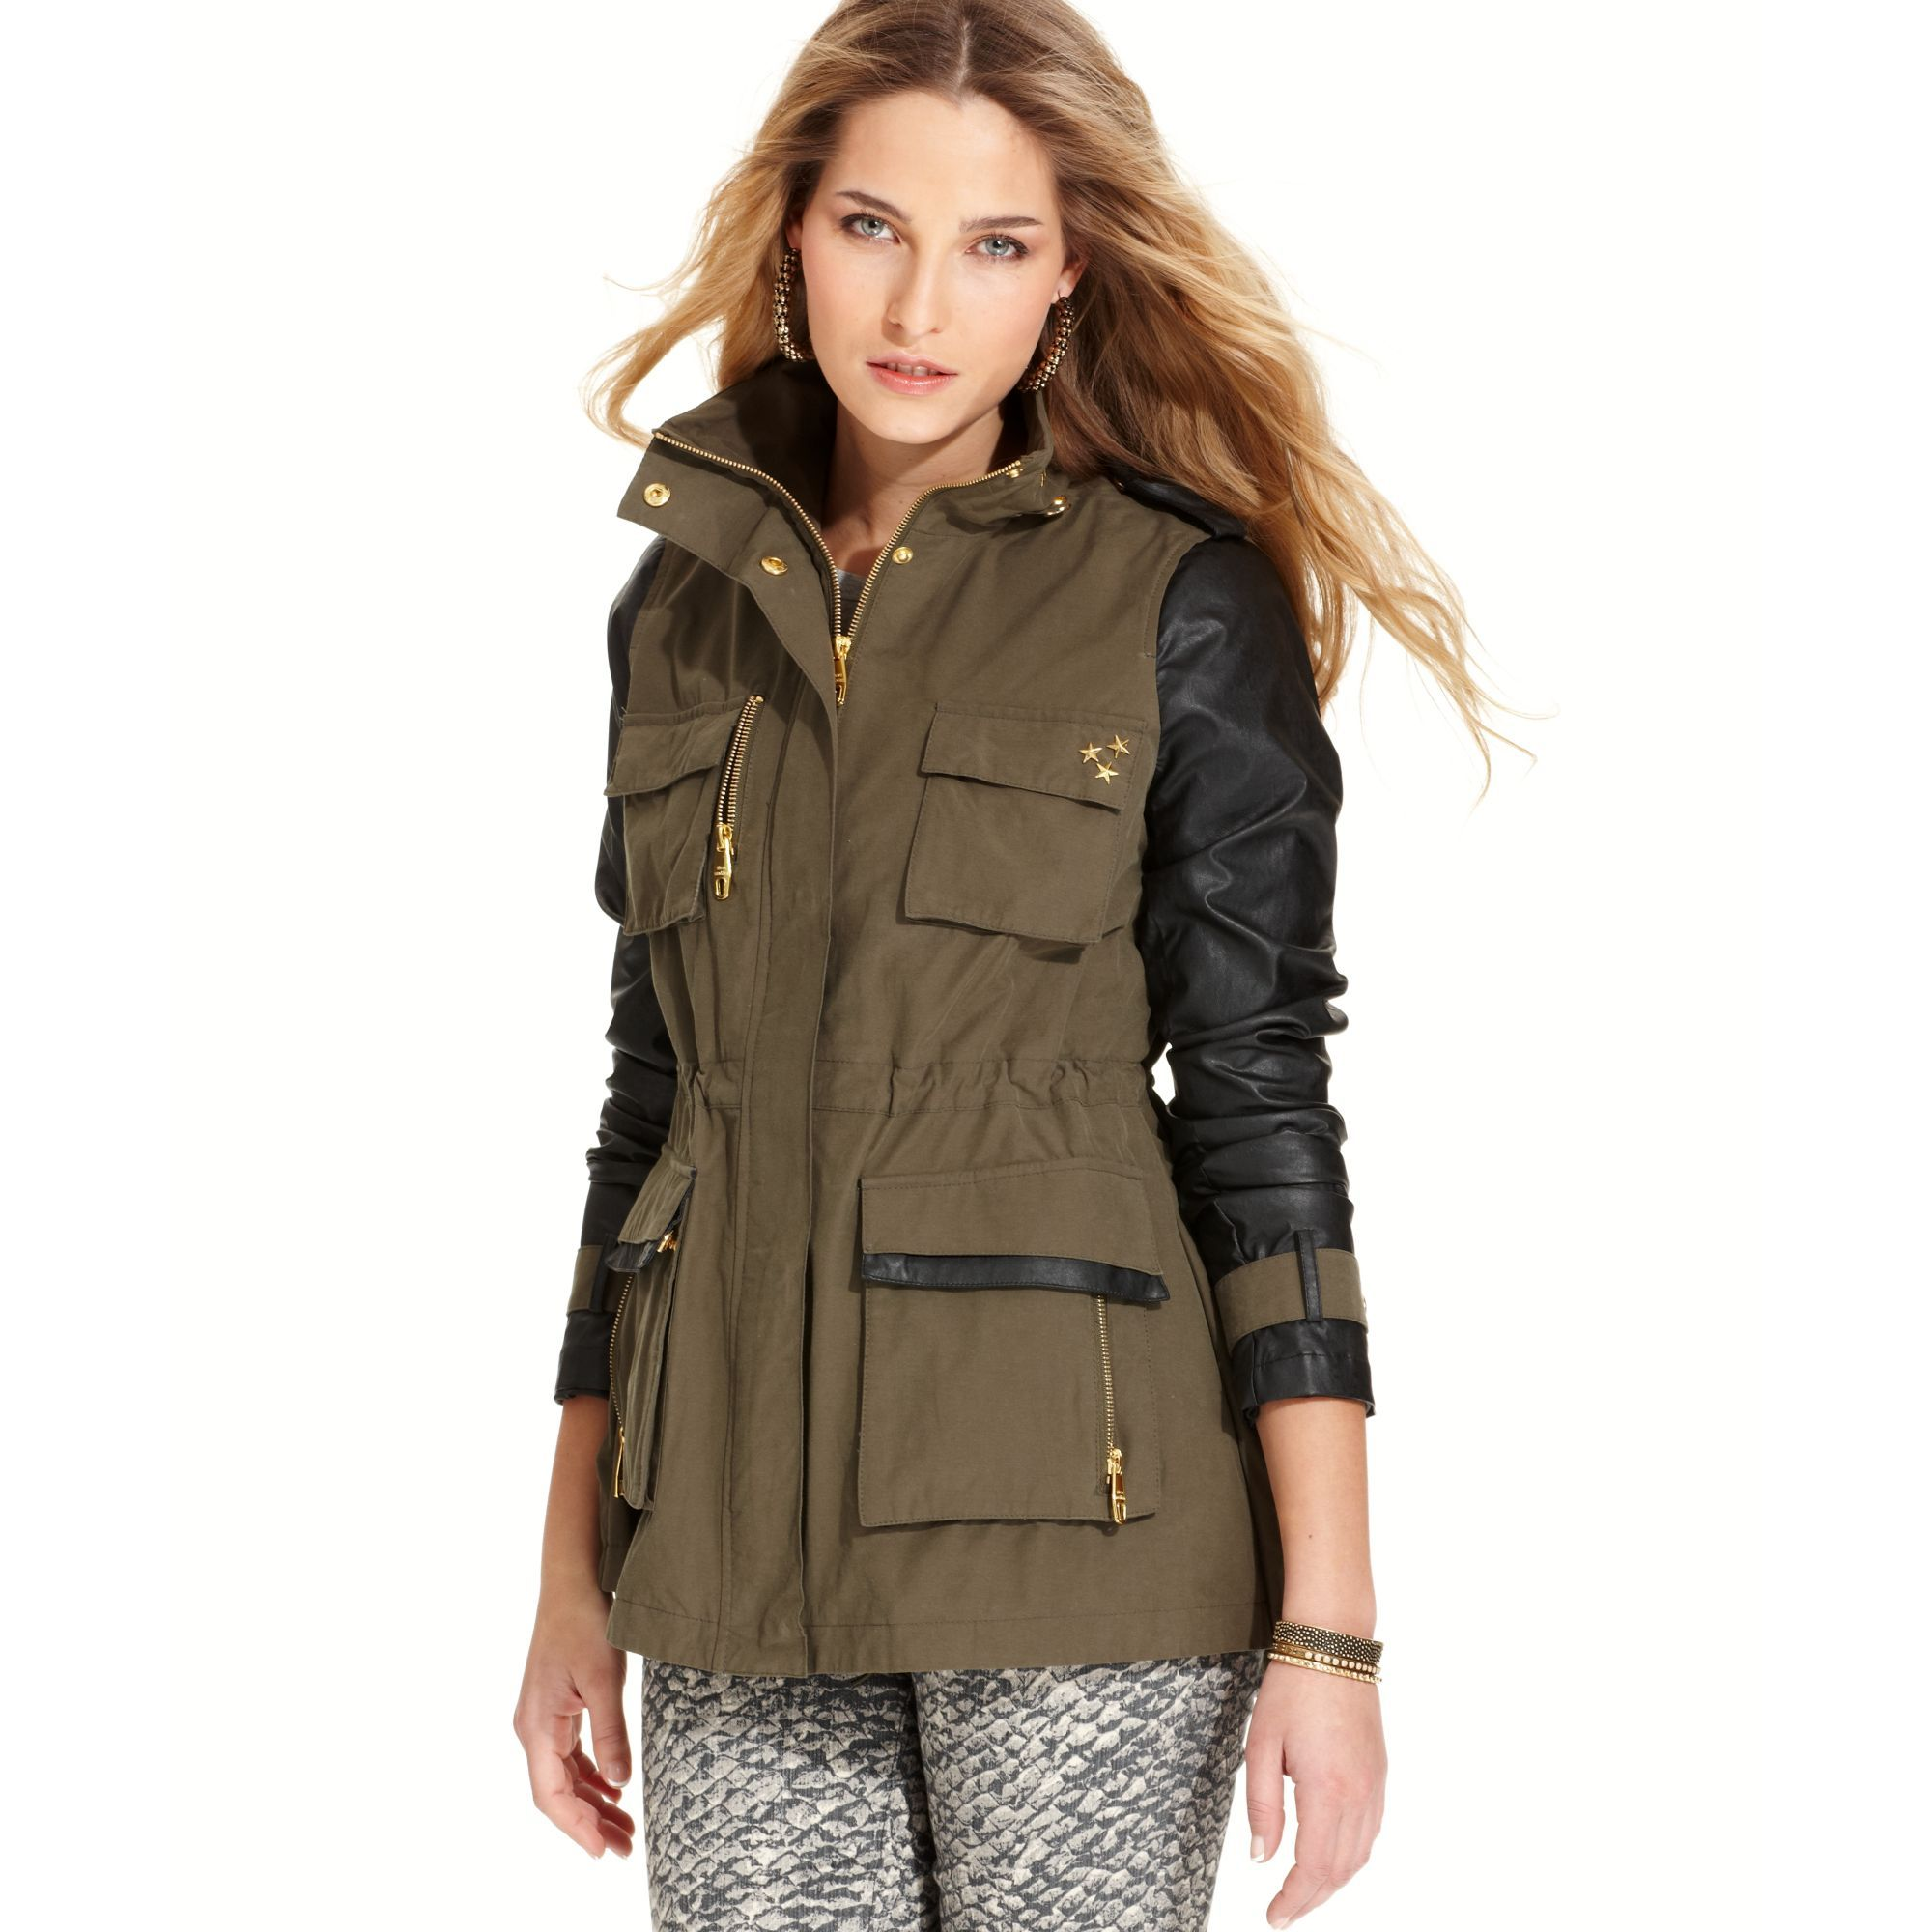 steve-madden-green-faux-leather-sleeve-anorak-jacket-product-1 ...